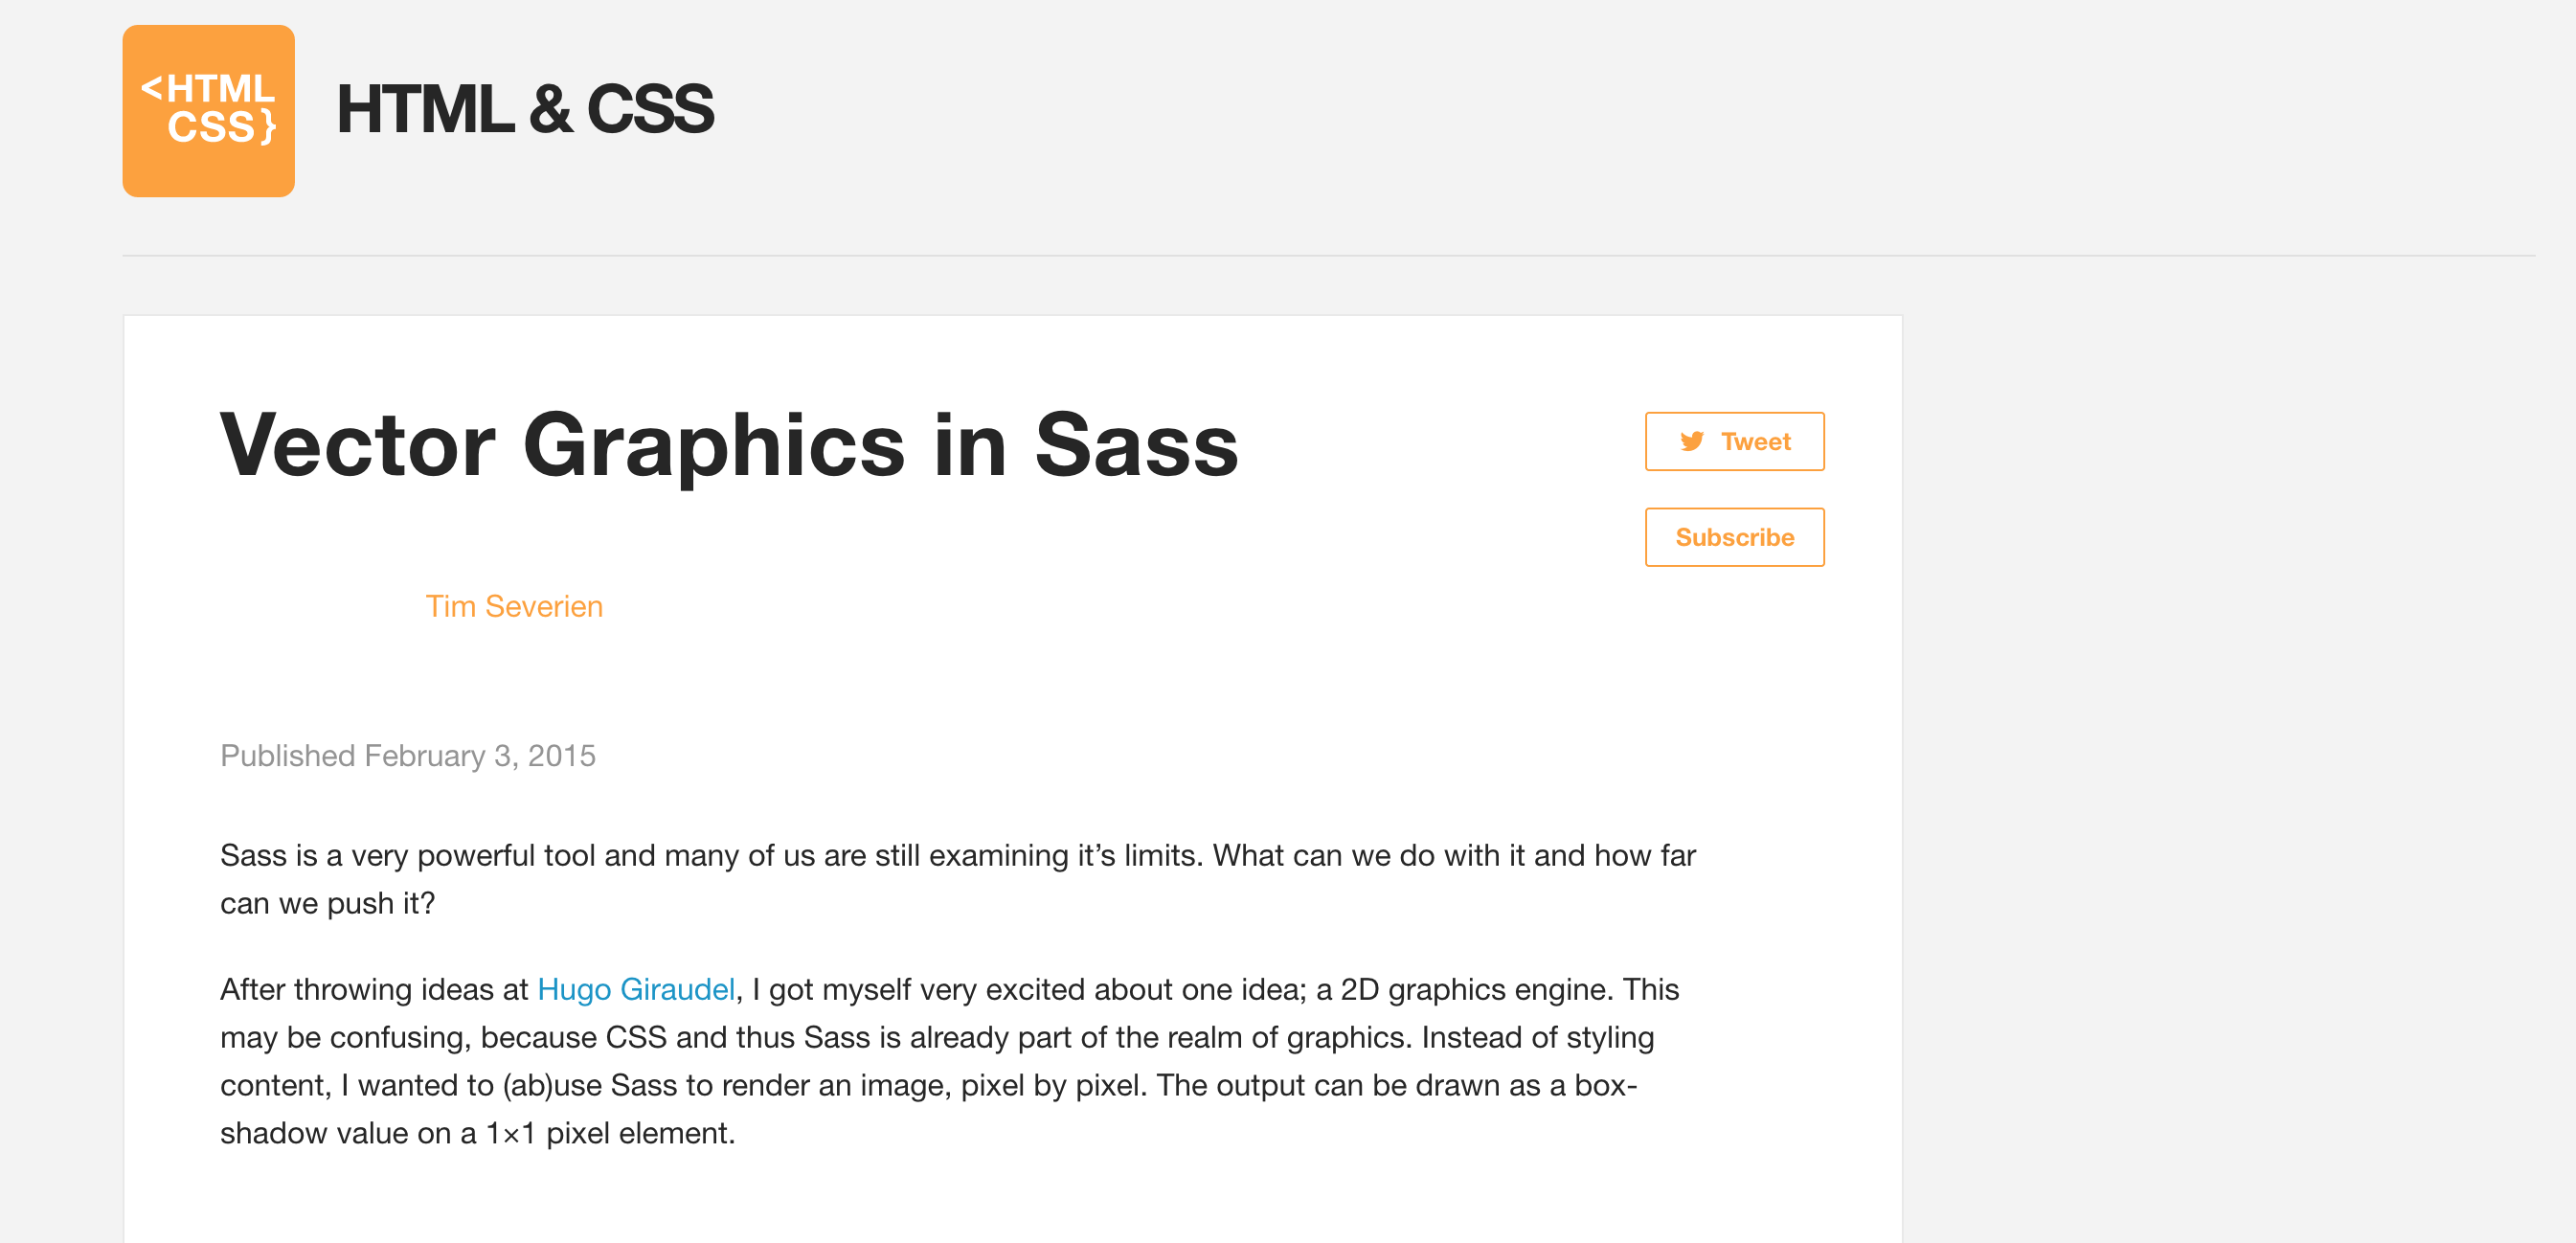 Vector Graphics in Sass